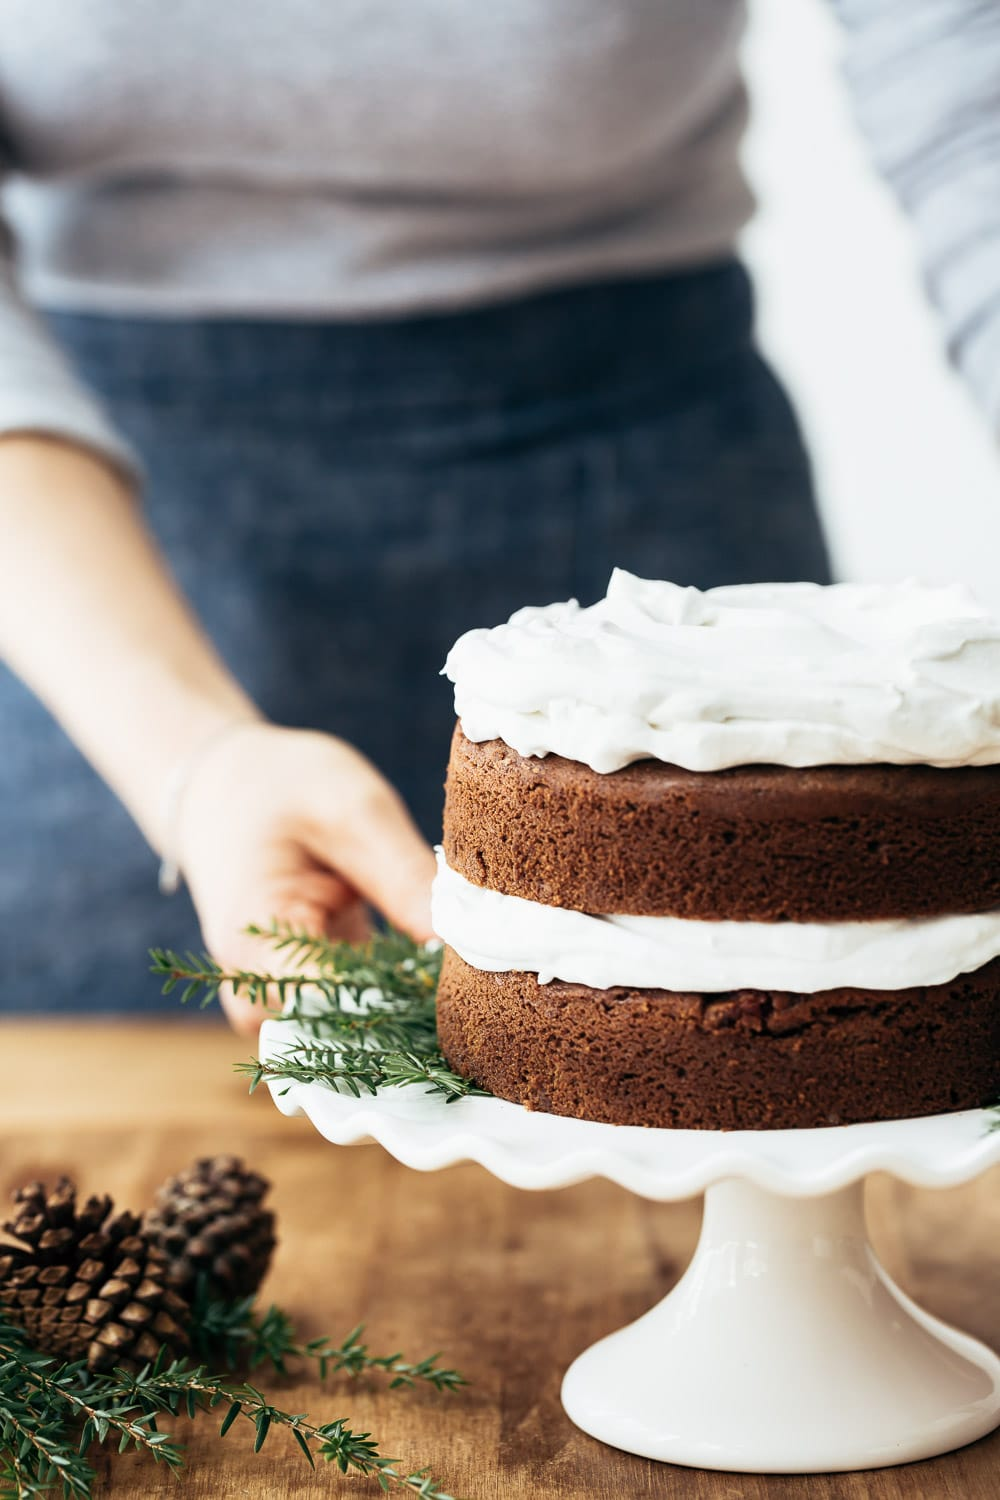 A woman is photographed from the front view as she is getting ready to garnish a Coconut Flour Gingerbread Cake with cranberry topping.